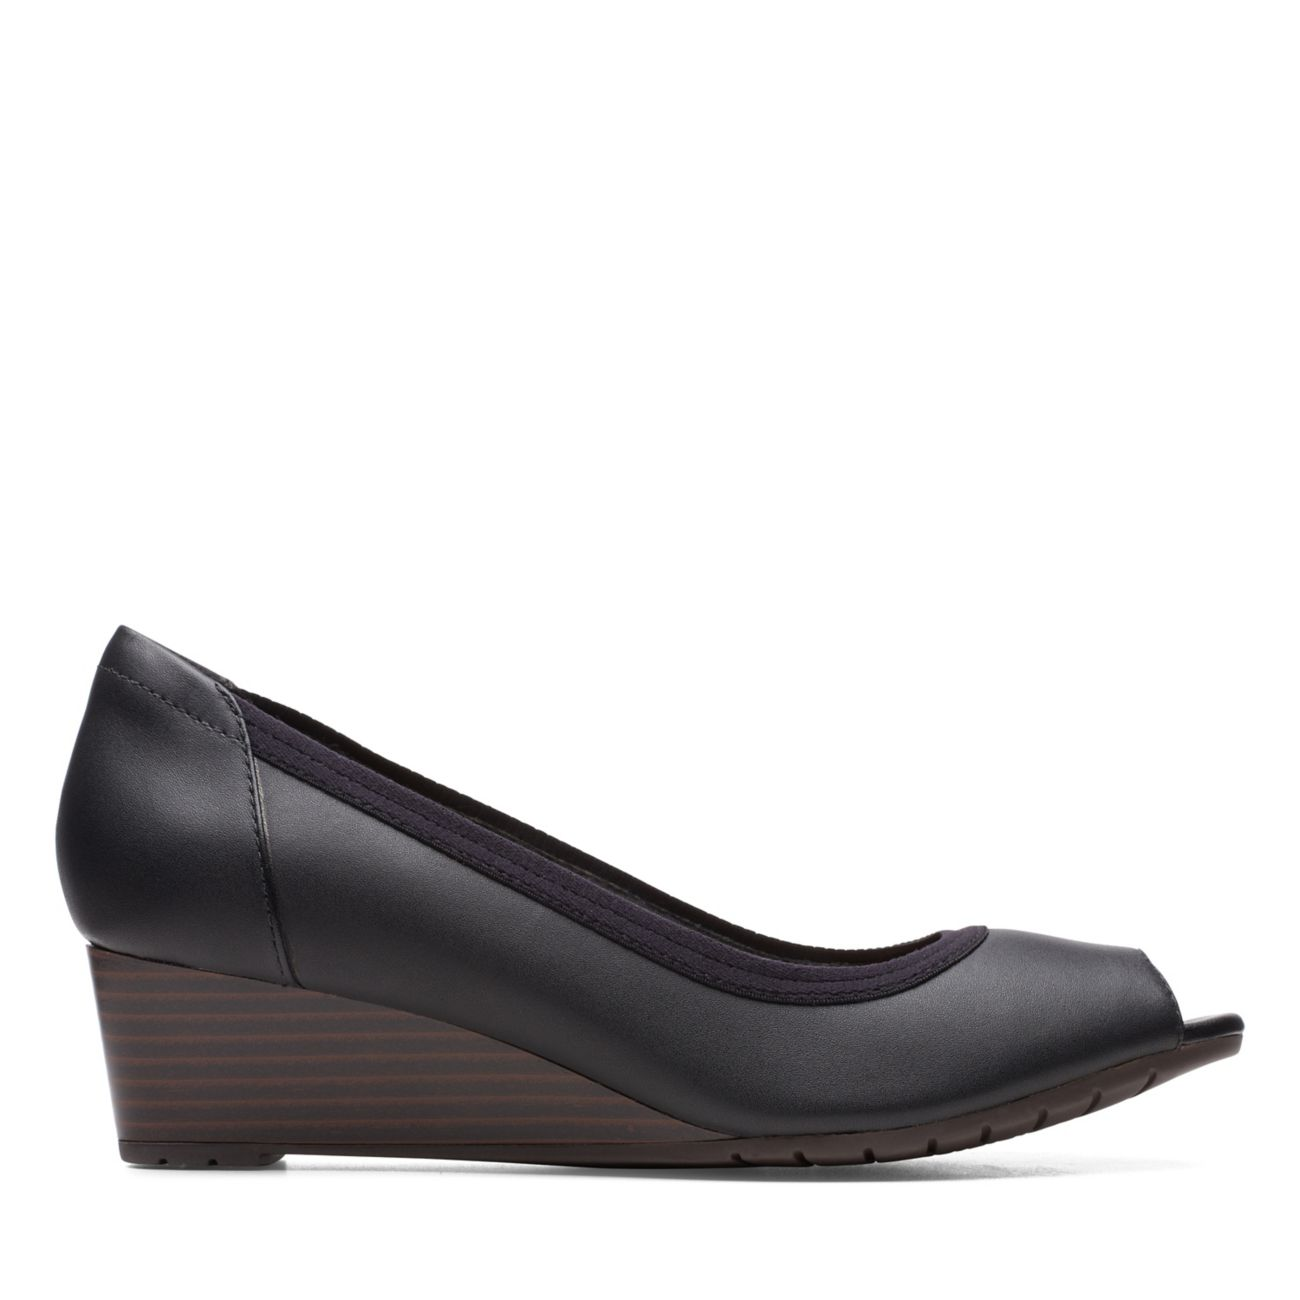 Mallory Charm Black Leather - Womens Dress Shoes - Clarks® Shoes Official Site     Clarks